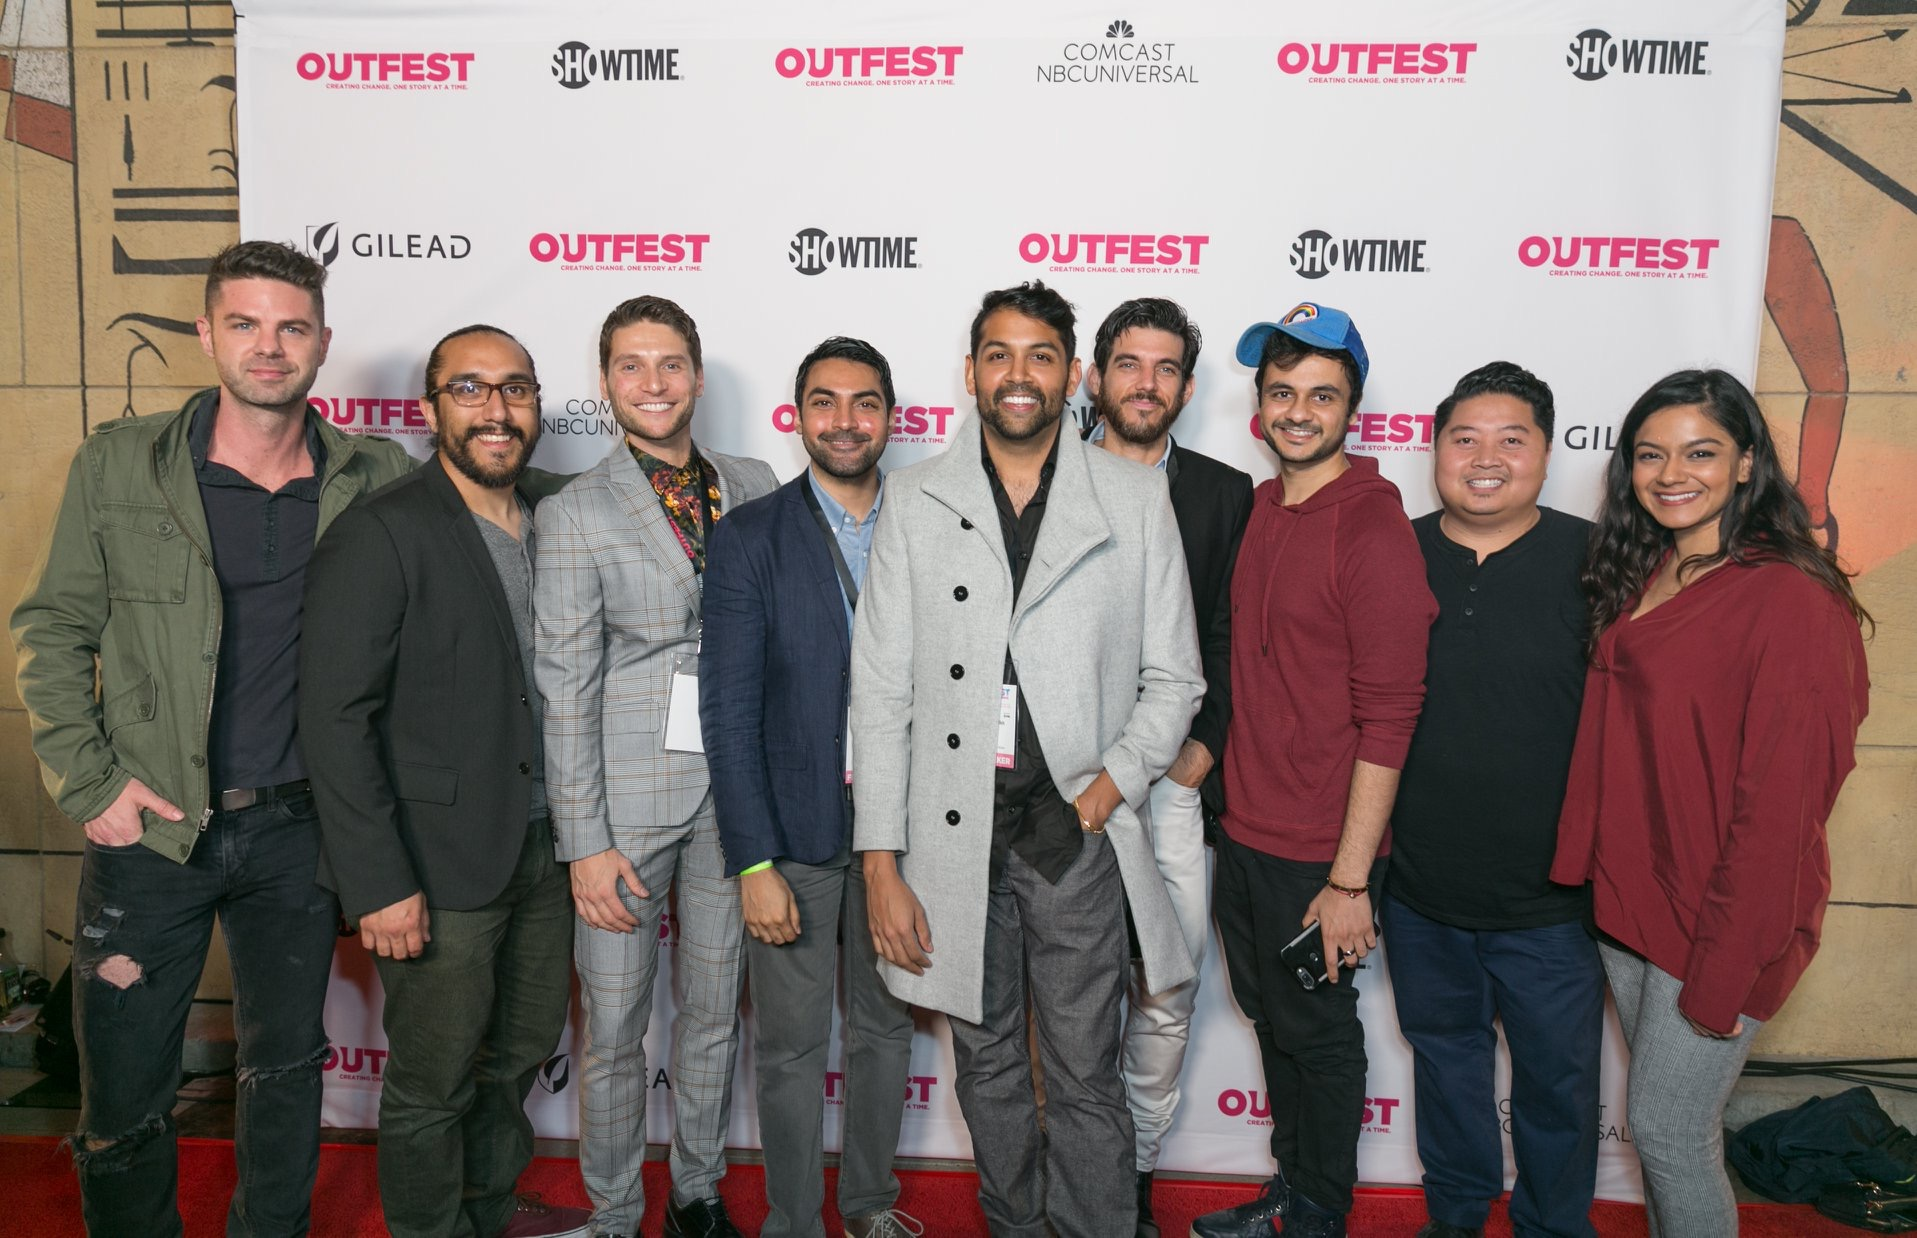 Left to Right Sterling Jones (actor), Ruben Contreras (Director of Photography), Alessandro Nori (Co-Producer), Faroukh Virani (Director), Shawn Parikh, Christopher Robleto-Harvey (Sound), Mayank Bhattar (Location Scout), Raashi (Composer)